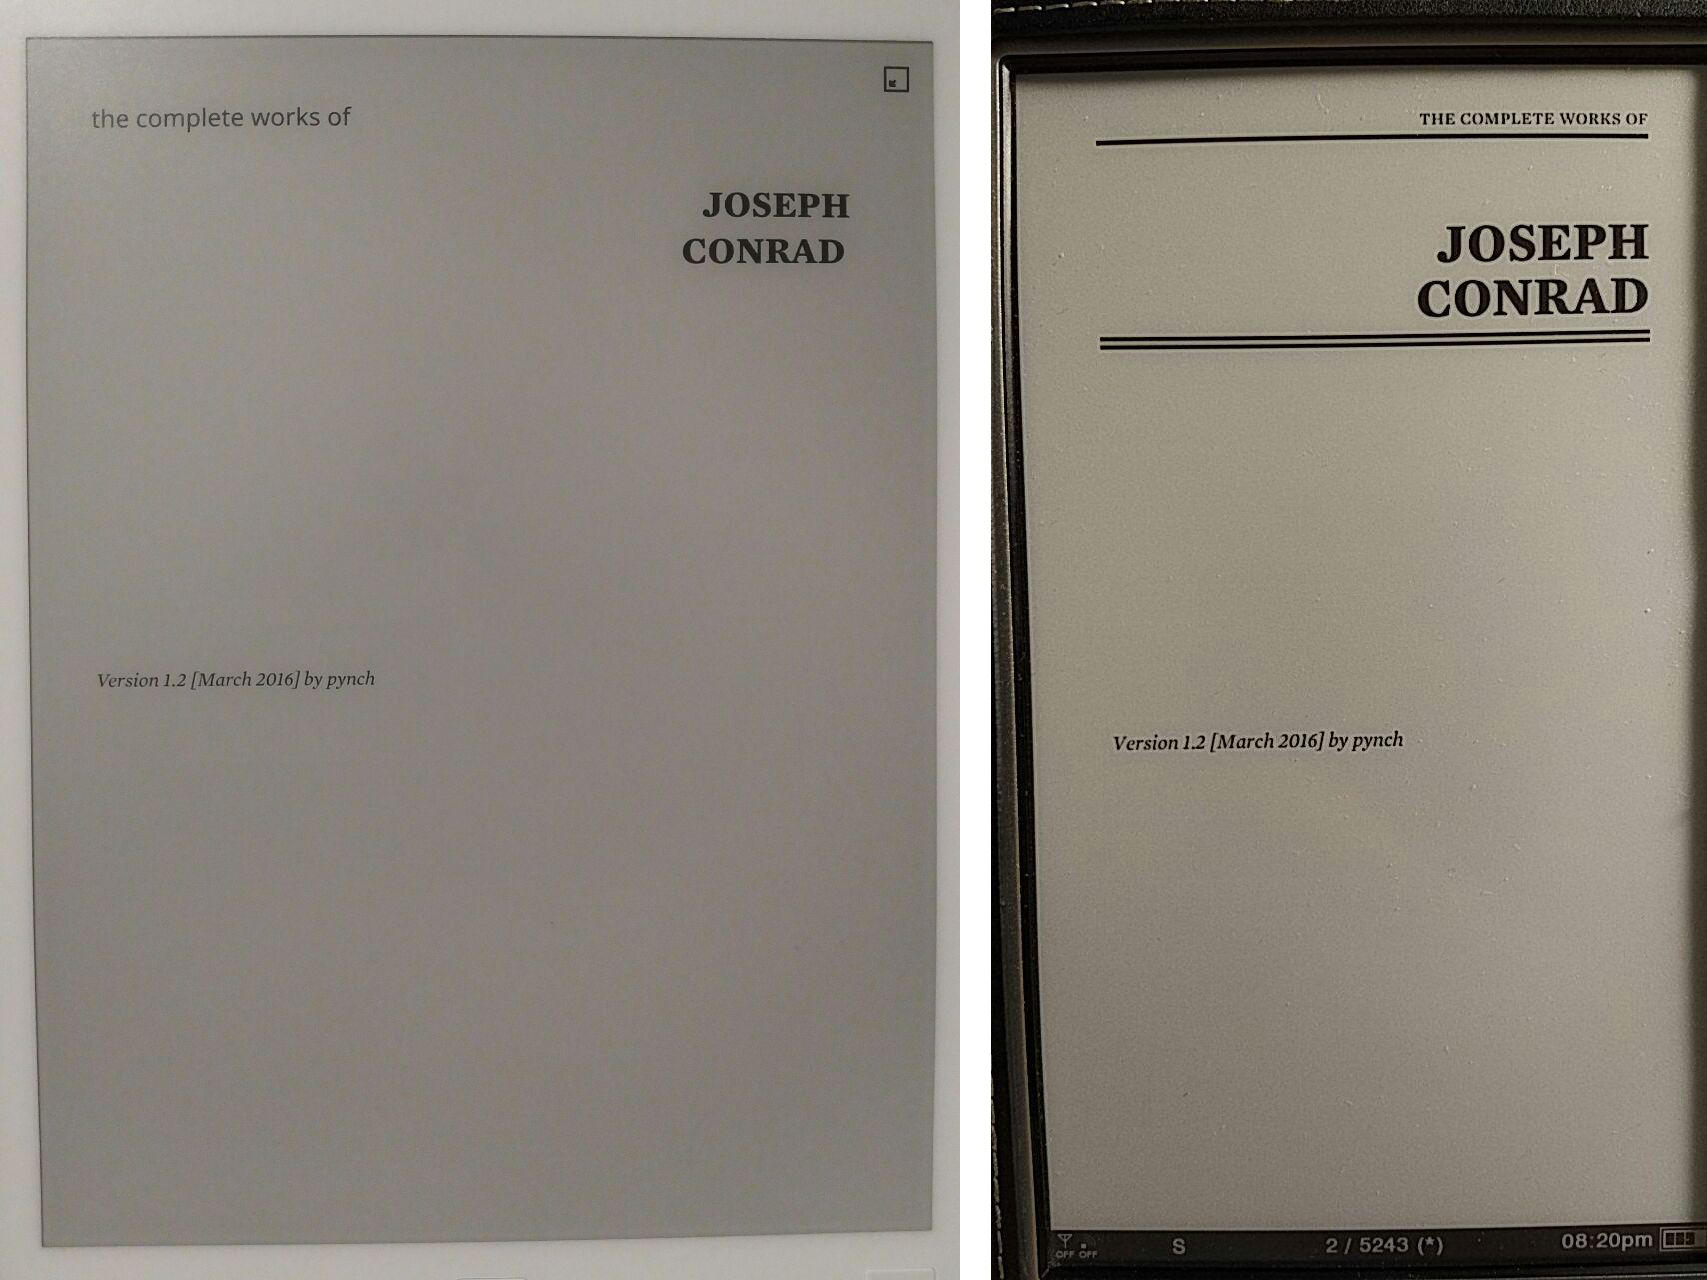 Nothing remarkable about the remarkable paper tablet a disastrous the second page of the test file on remarkable left and sony daily edition right fandeluxe Choice Image